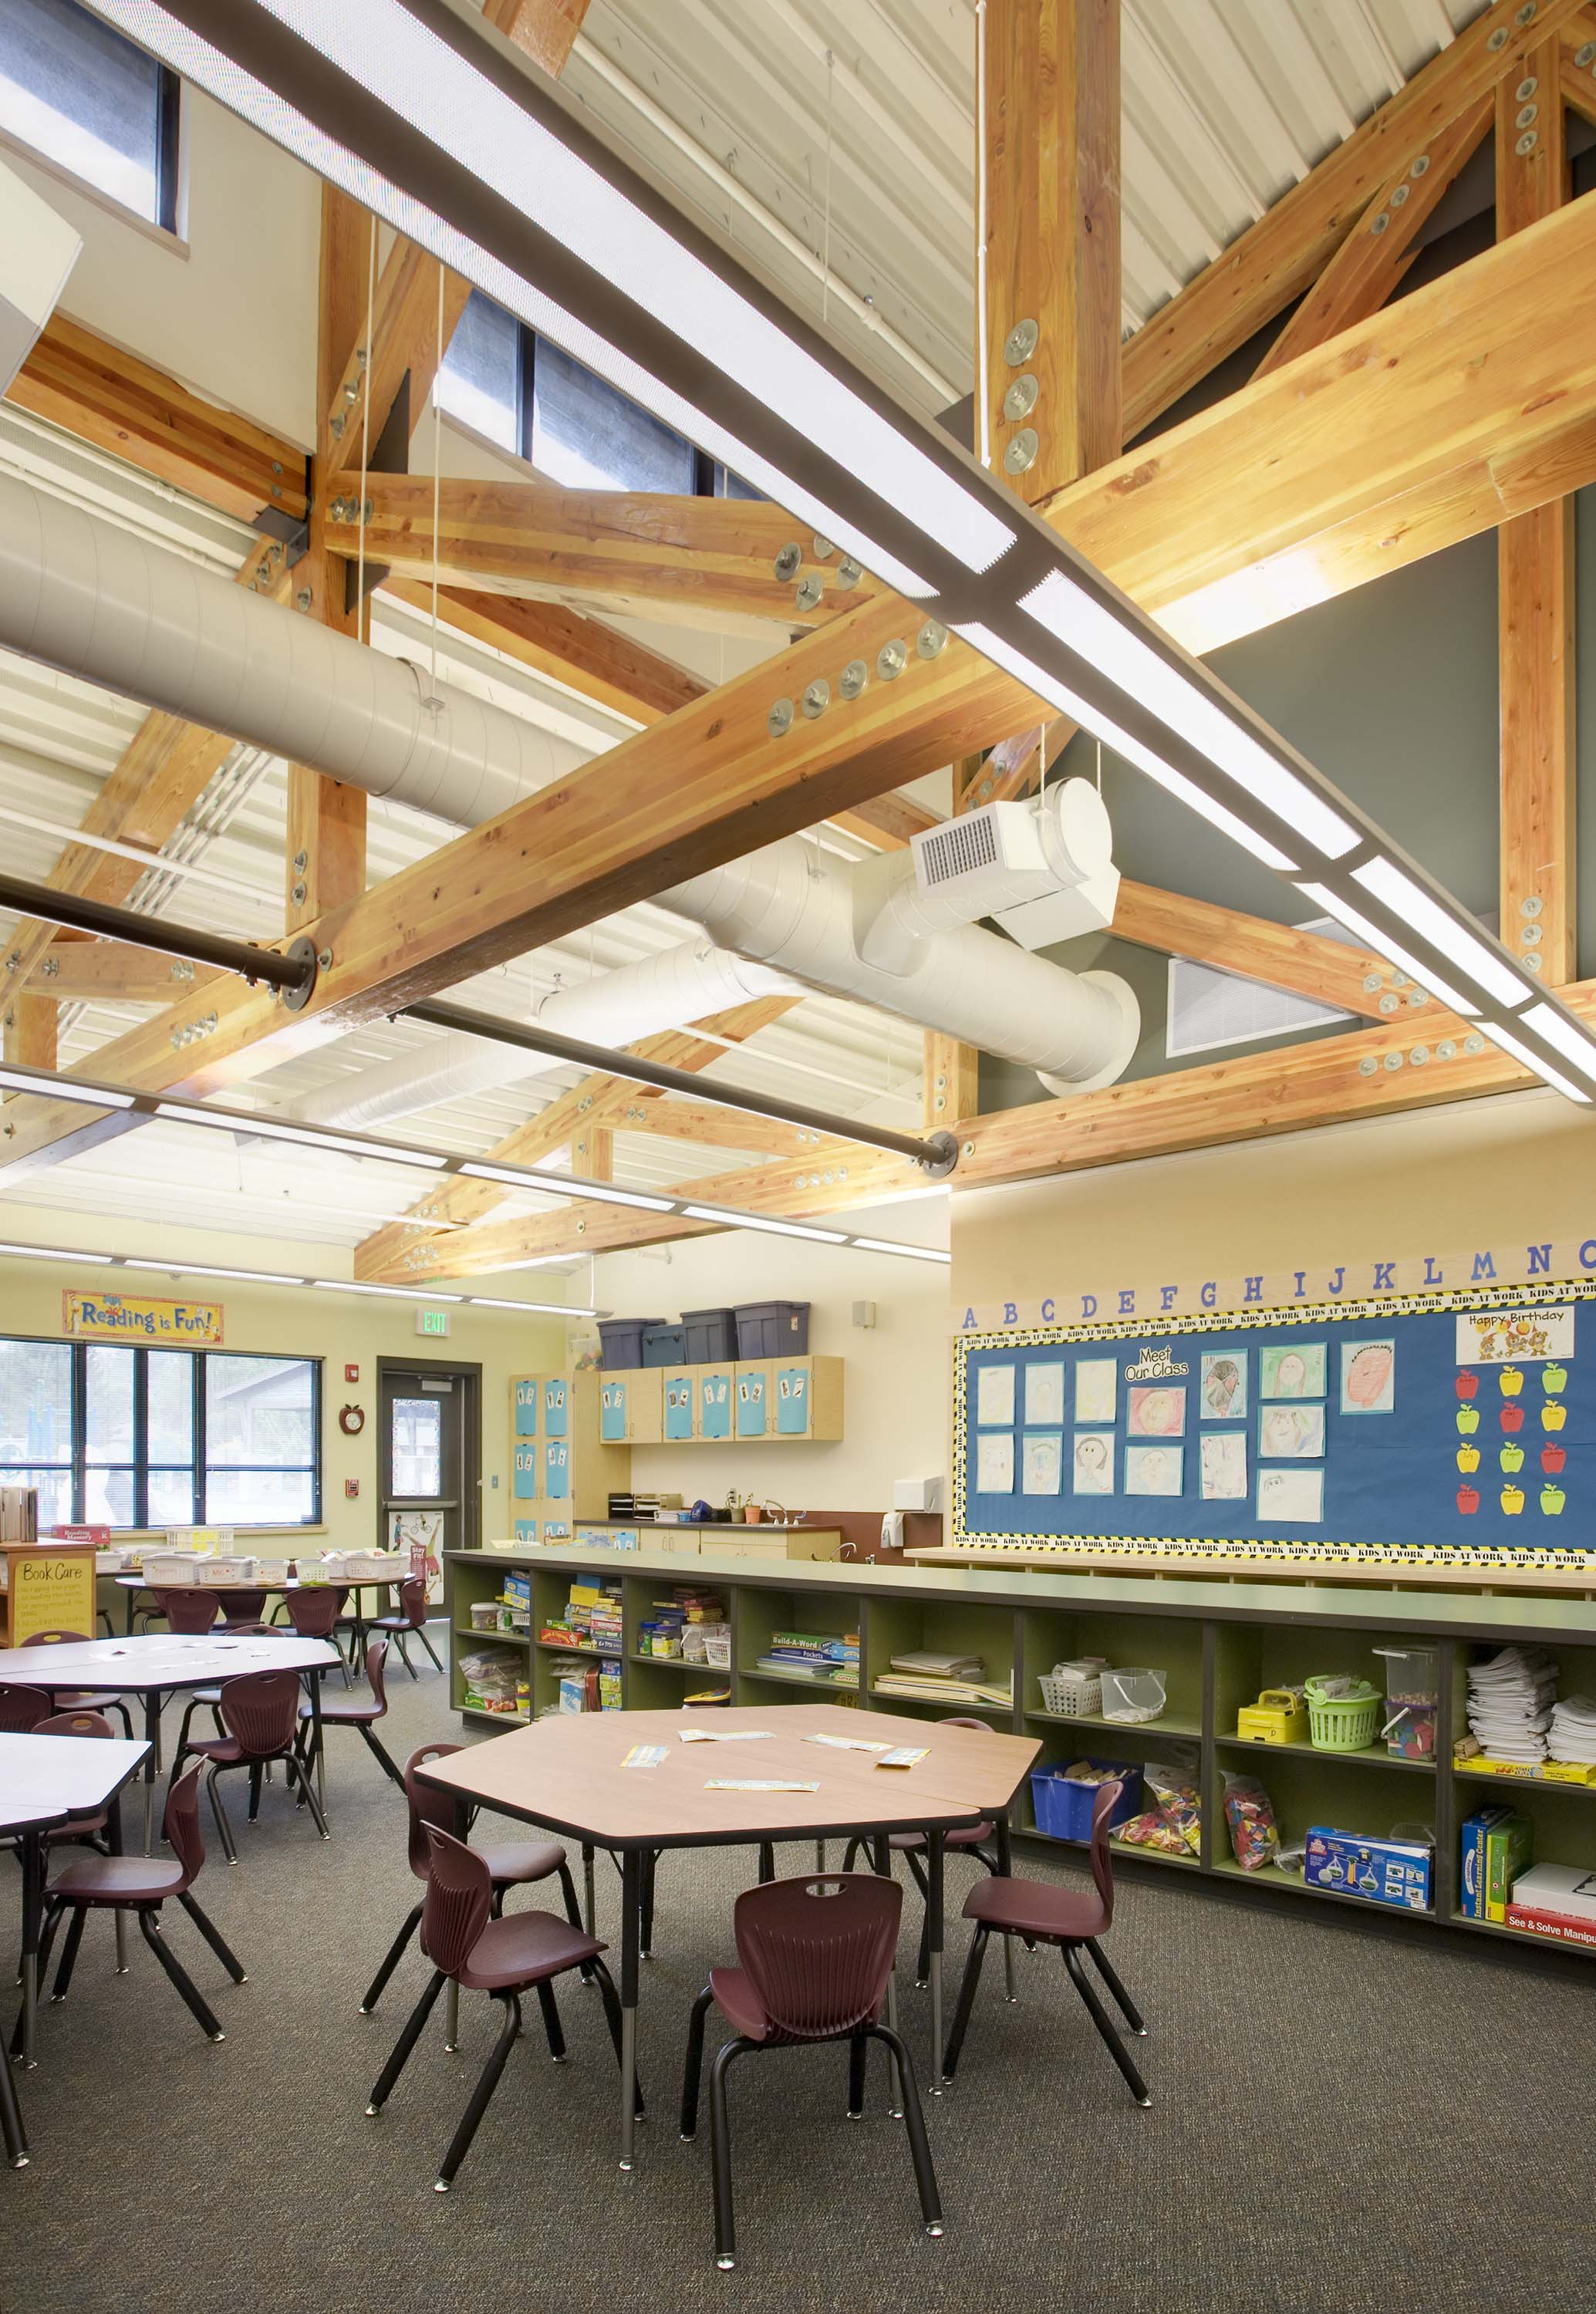 Art classroom with high ceilings and wood beams.